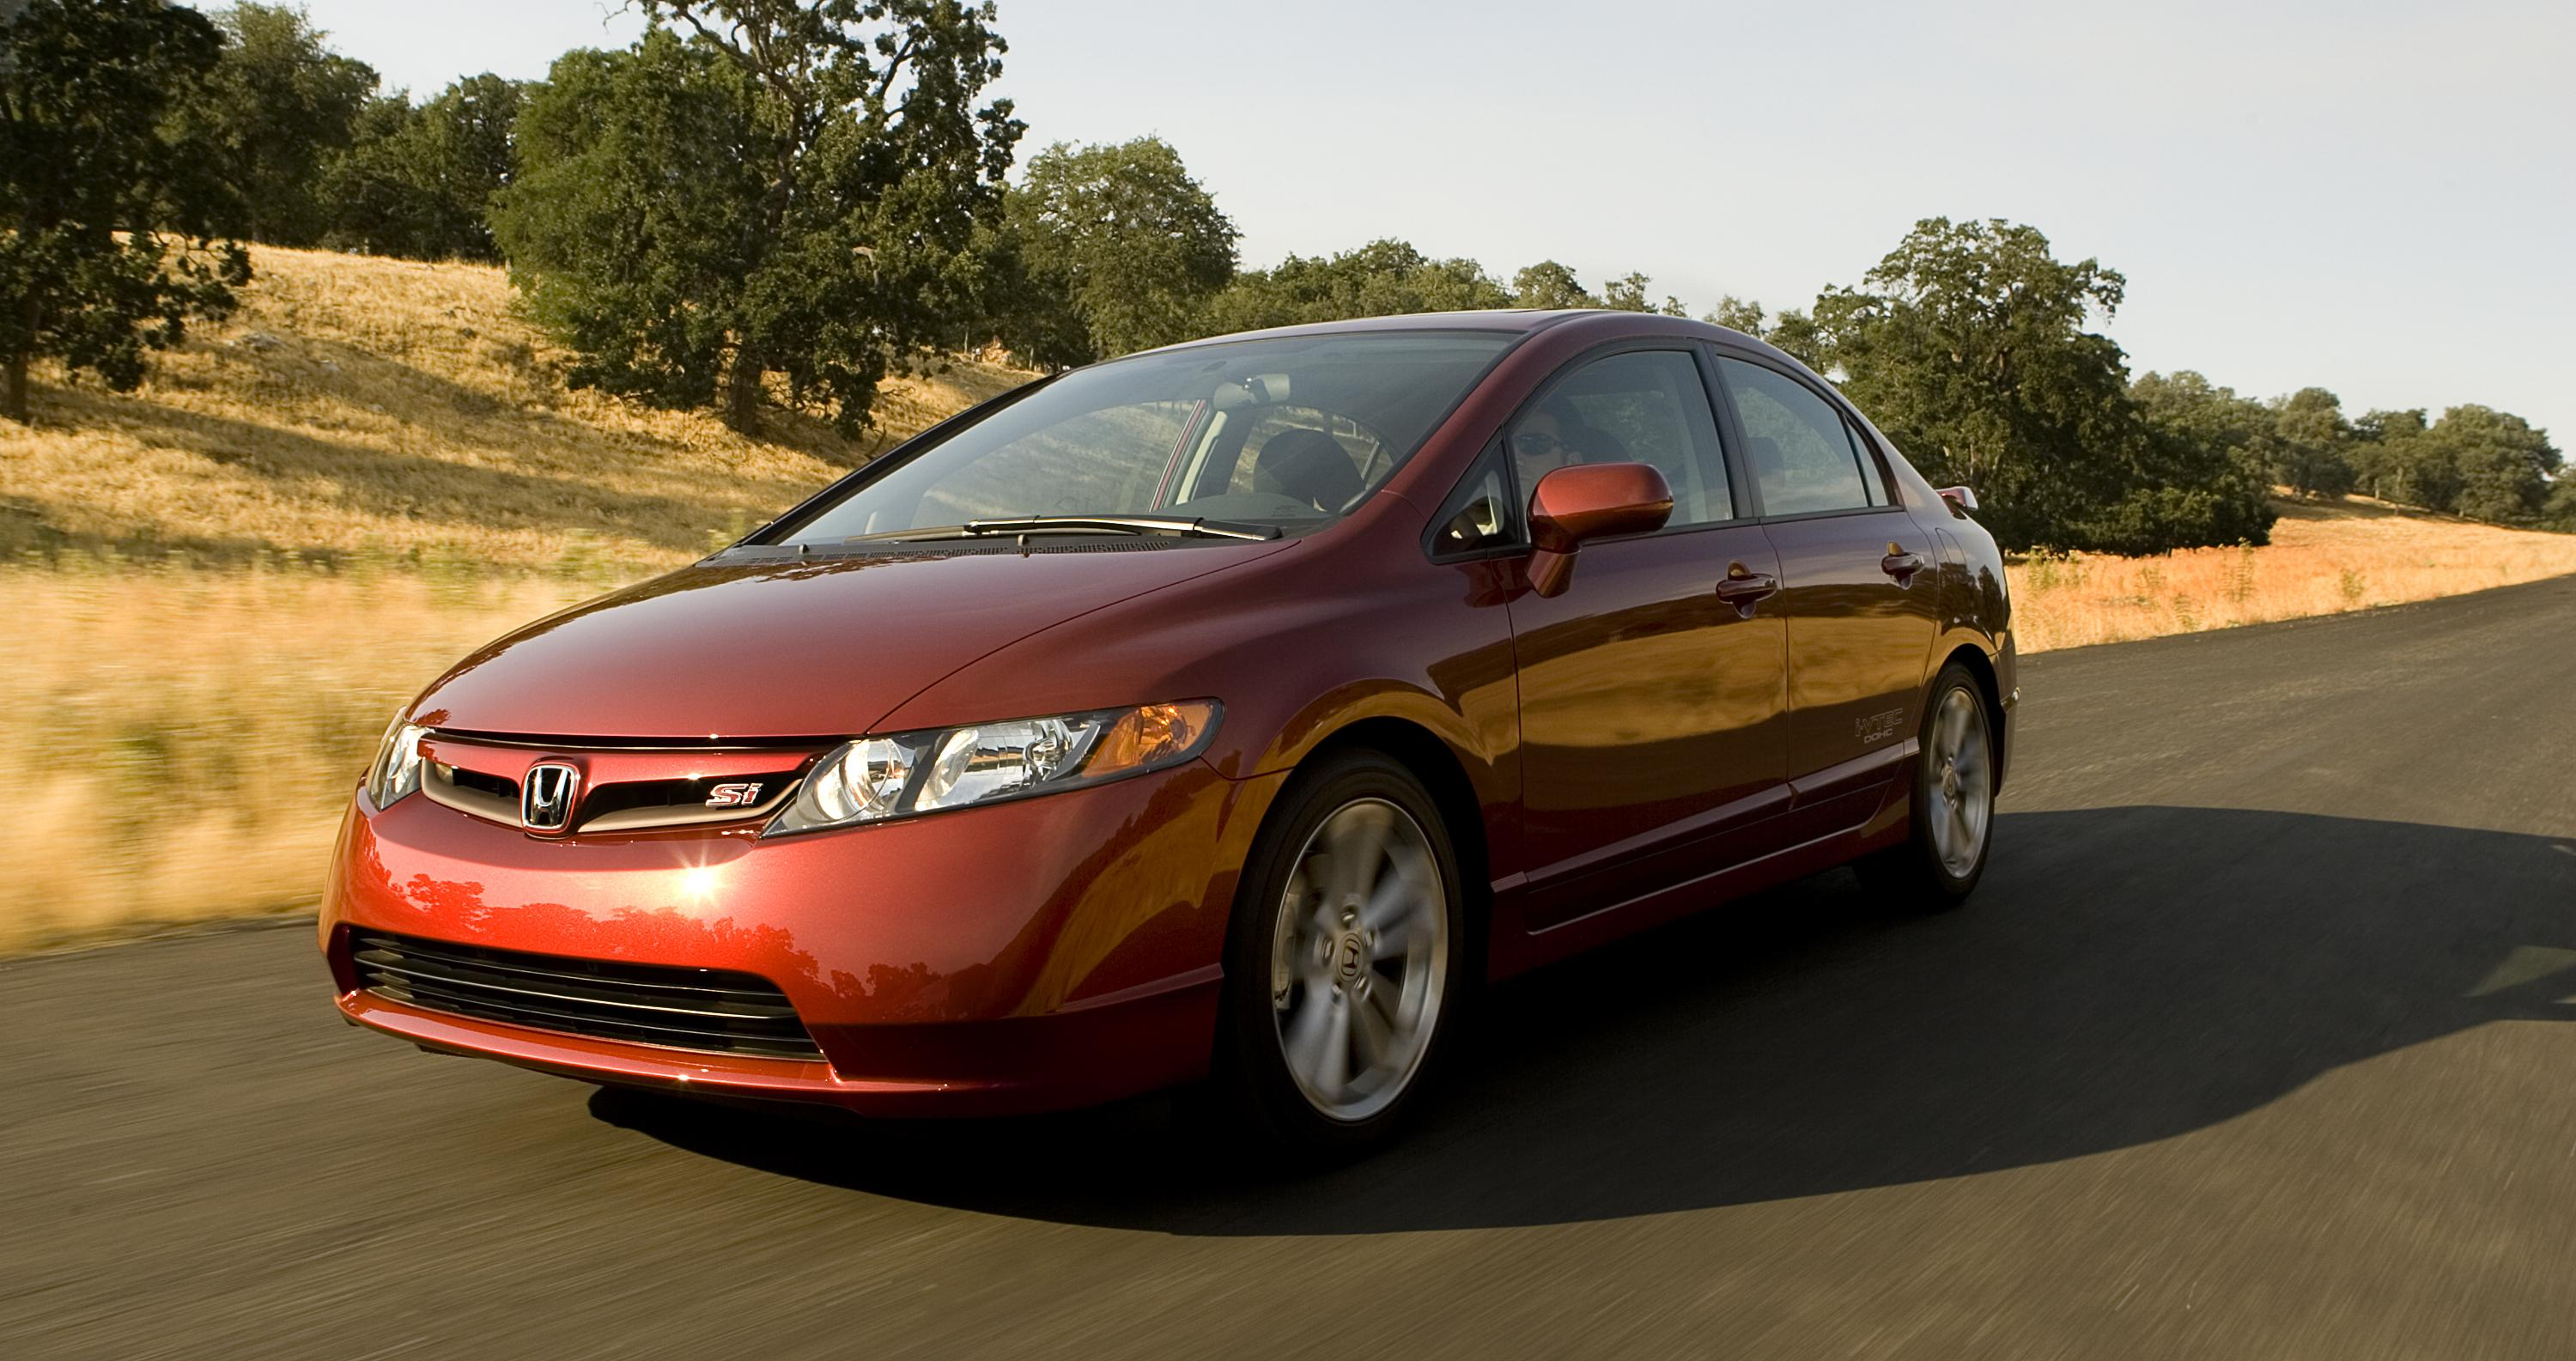 2008 honda civic si review top speed. Black Bedroom Furniture Sets. Home Design Ideas